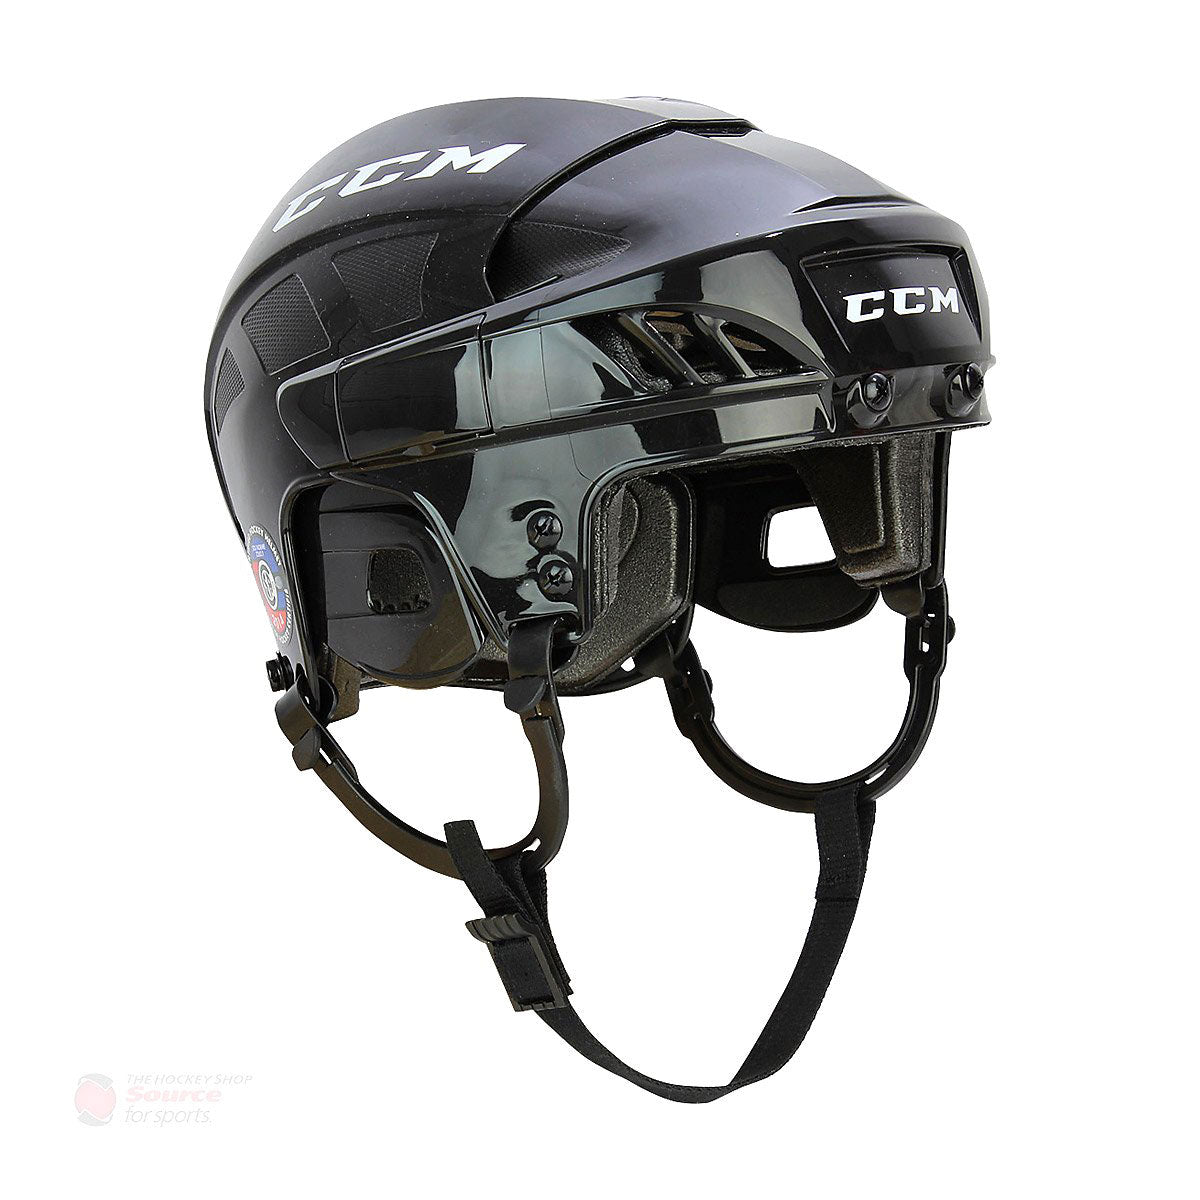 f5197ecbb7a CCM FitLITE 40 Hockey Helmet – The Hockey Shop Source For Sports